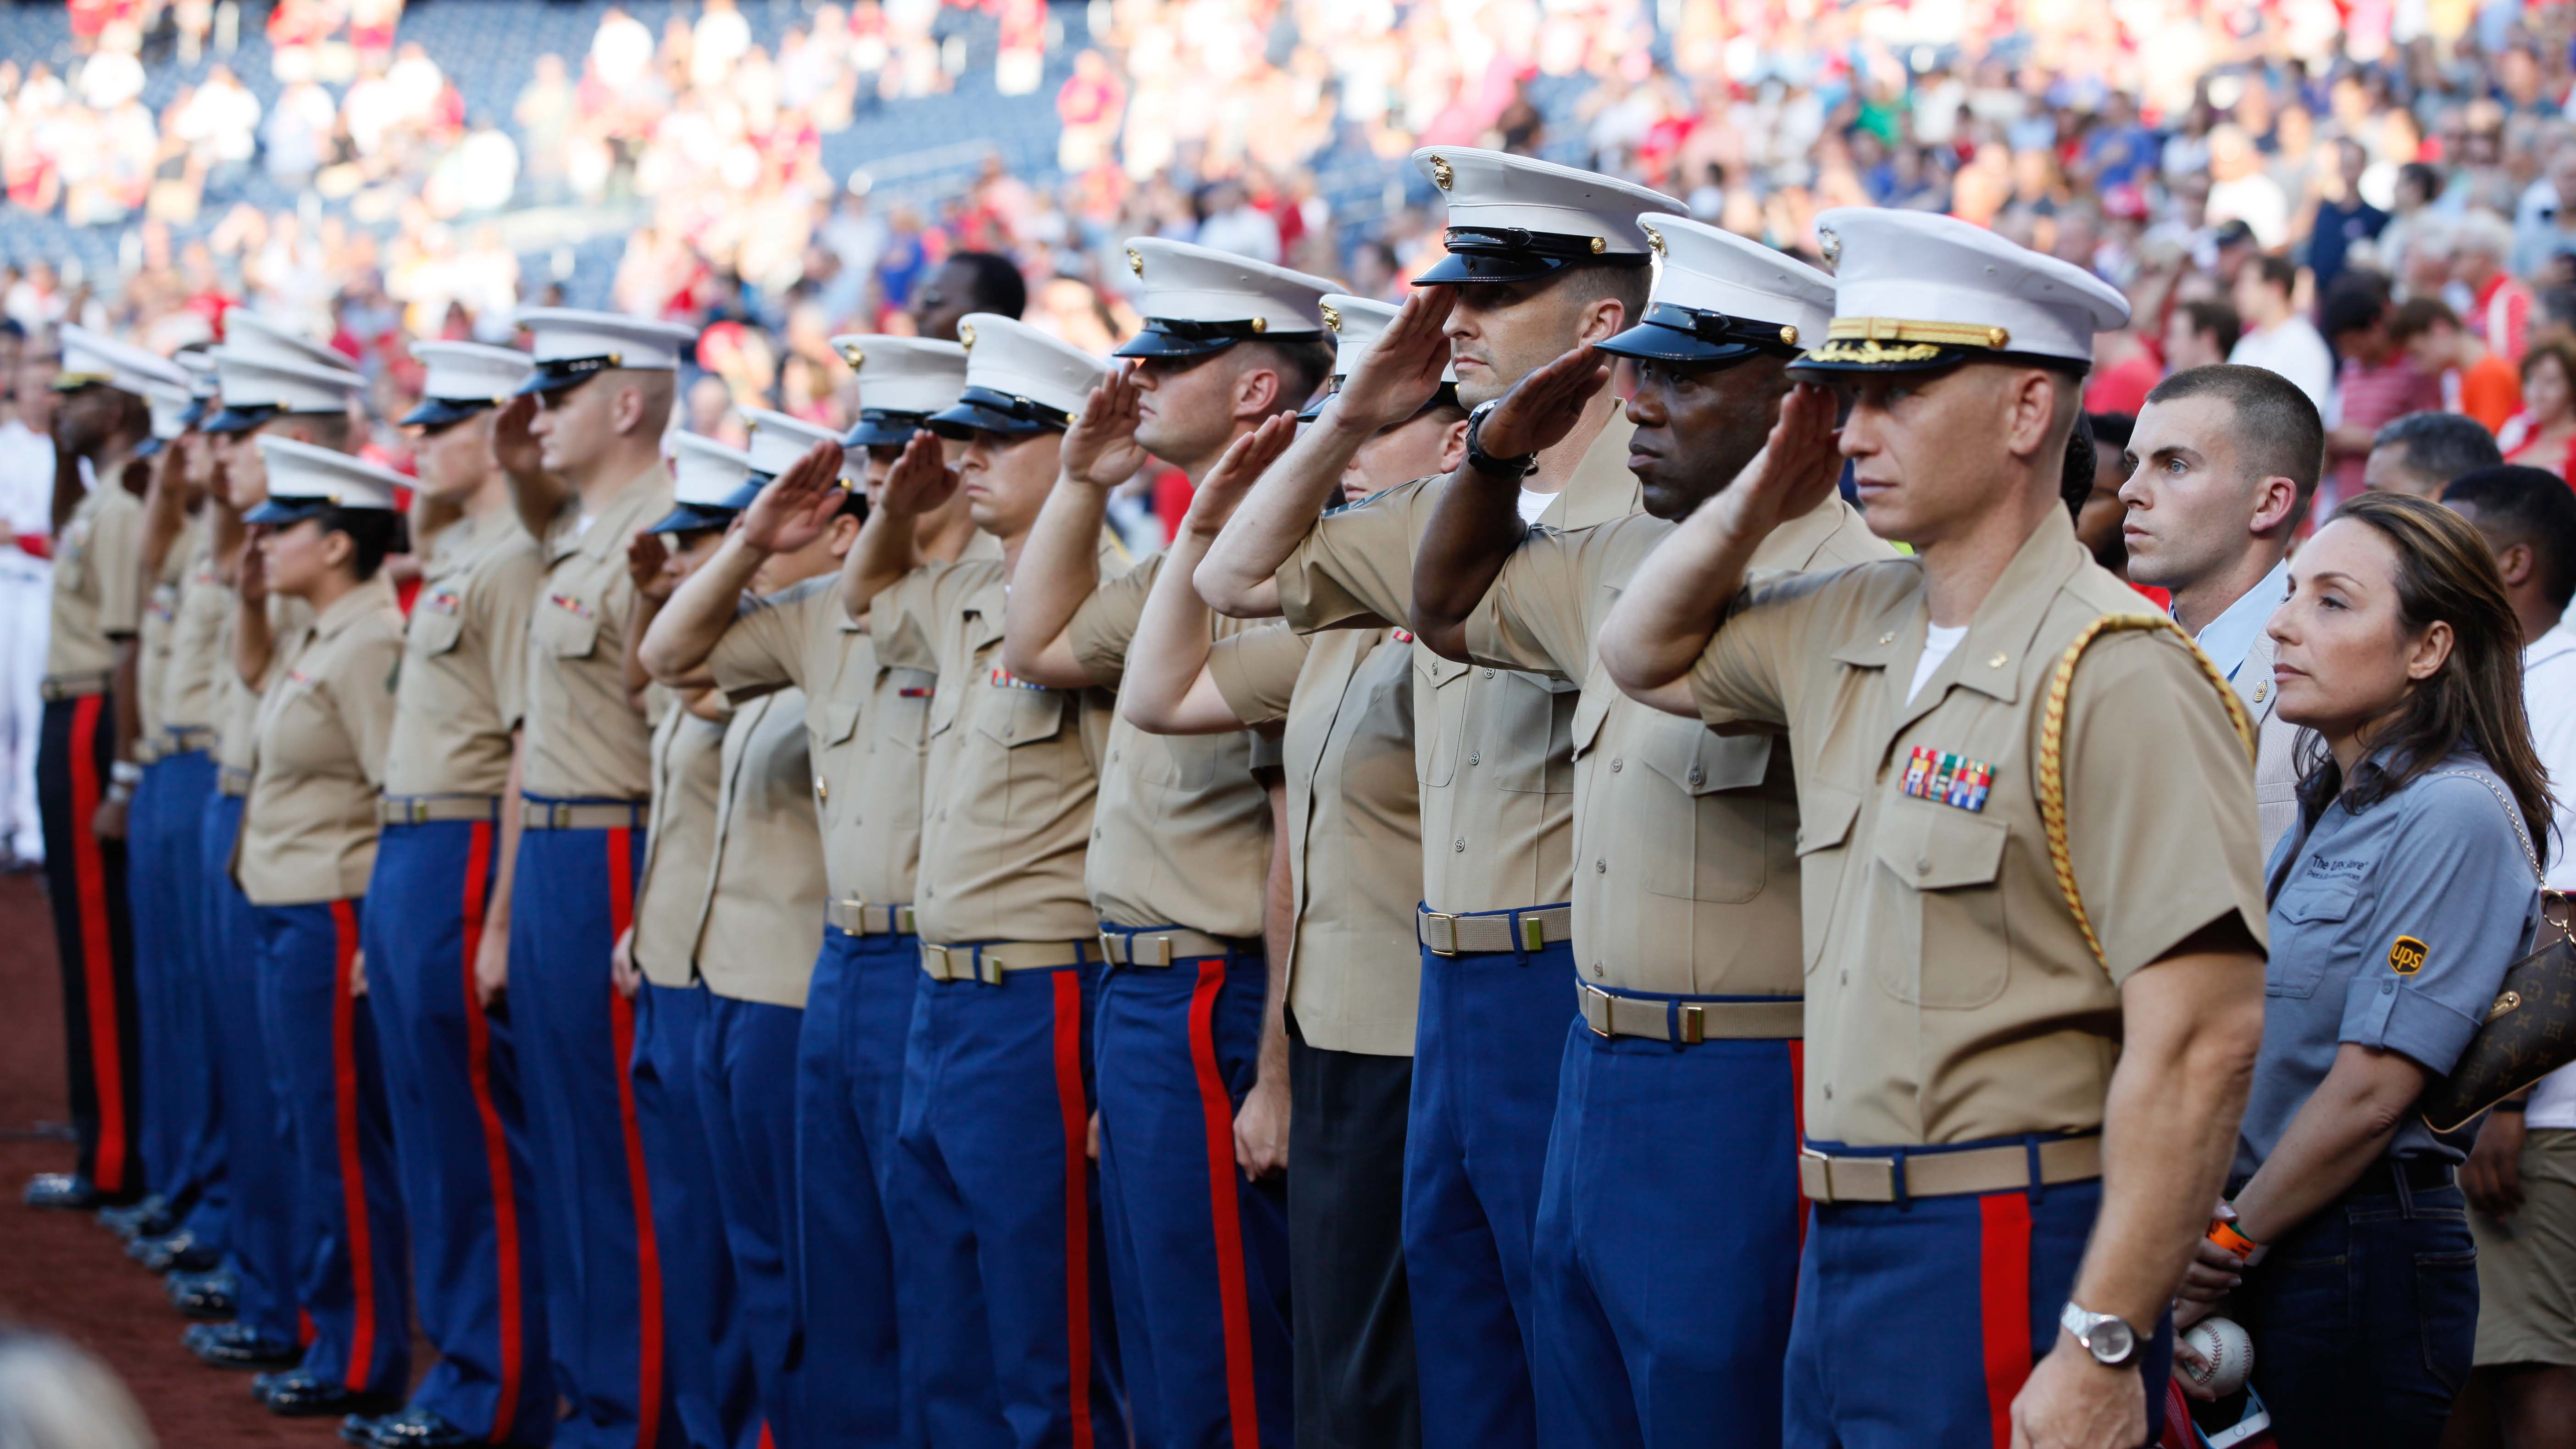 Marines stand at attention during a Nats game.